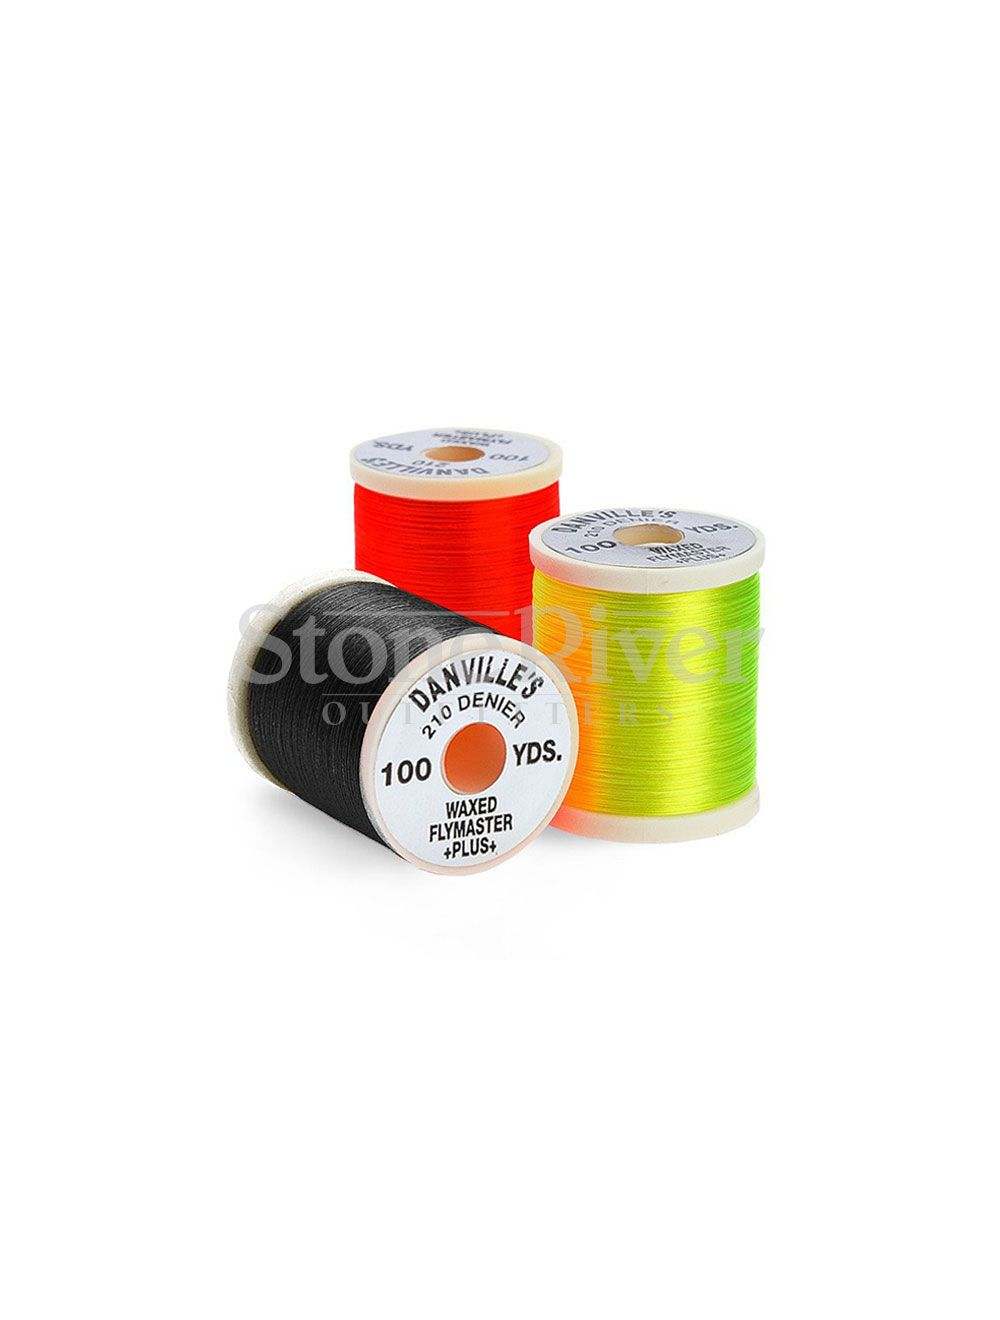 DANVILLE FLYMASTER PLUS 210  WAXED THREAD -OLIVE